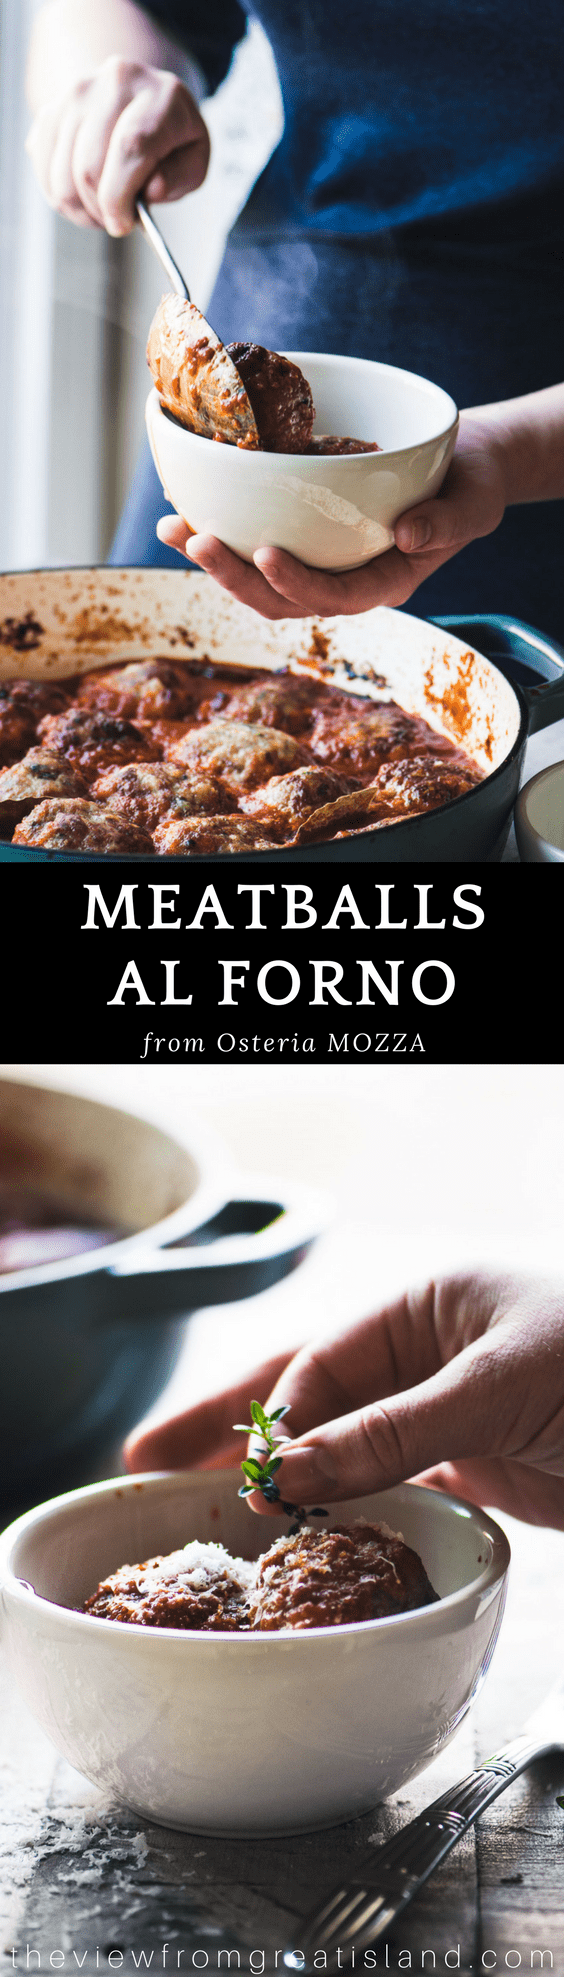 Meatballs al forno are simply the best meatballs in the world ~ try them and see! #meatballs #mozza #nancysilverton #Italianmeatballs #bestmeatballs #dinner #maincourse #groundbeef #veal #appetizer #meat #beef #angusbeef #meatballrecipe